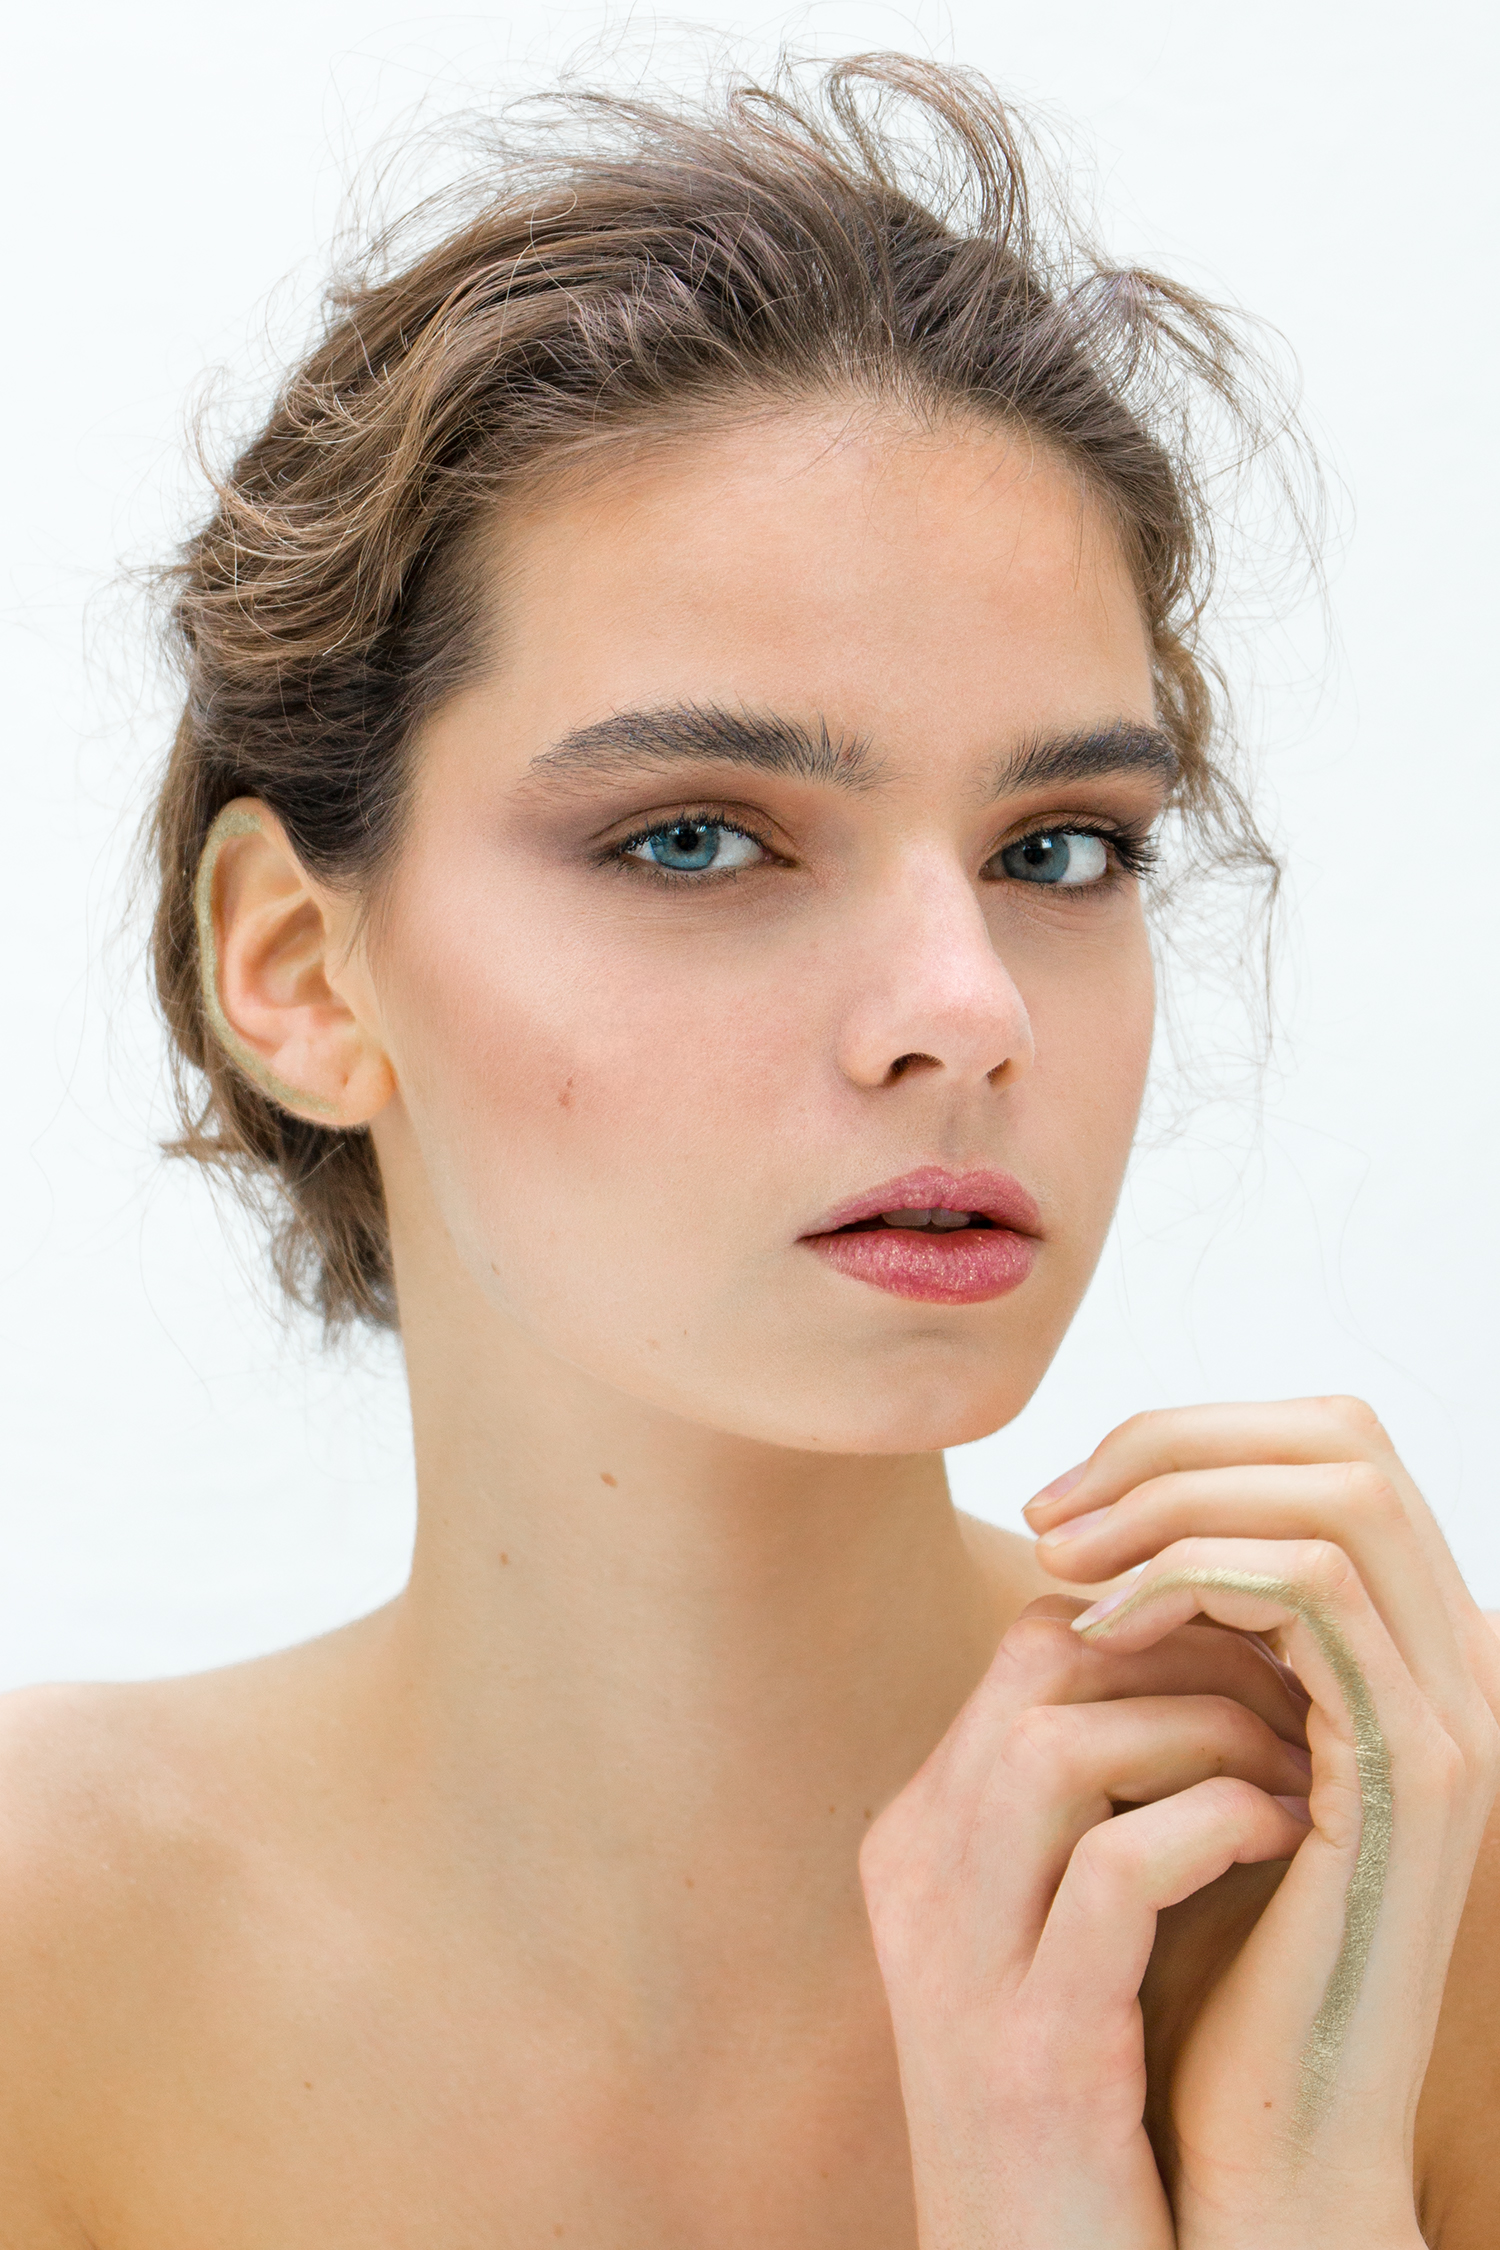 Senna @ VDM Models - Beauty photography by Alexandra Huijgens